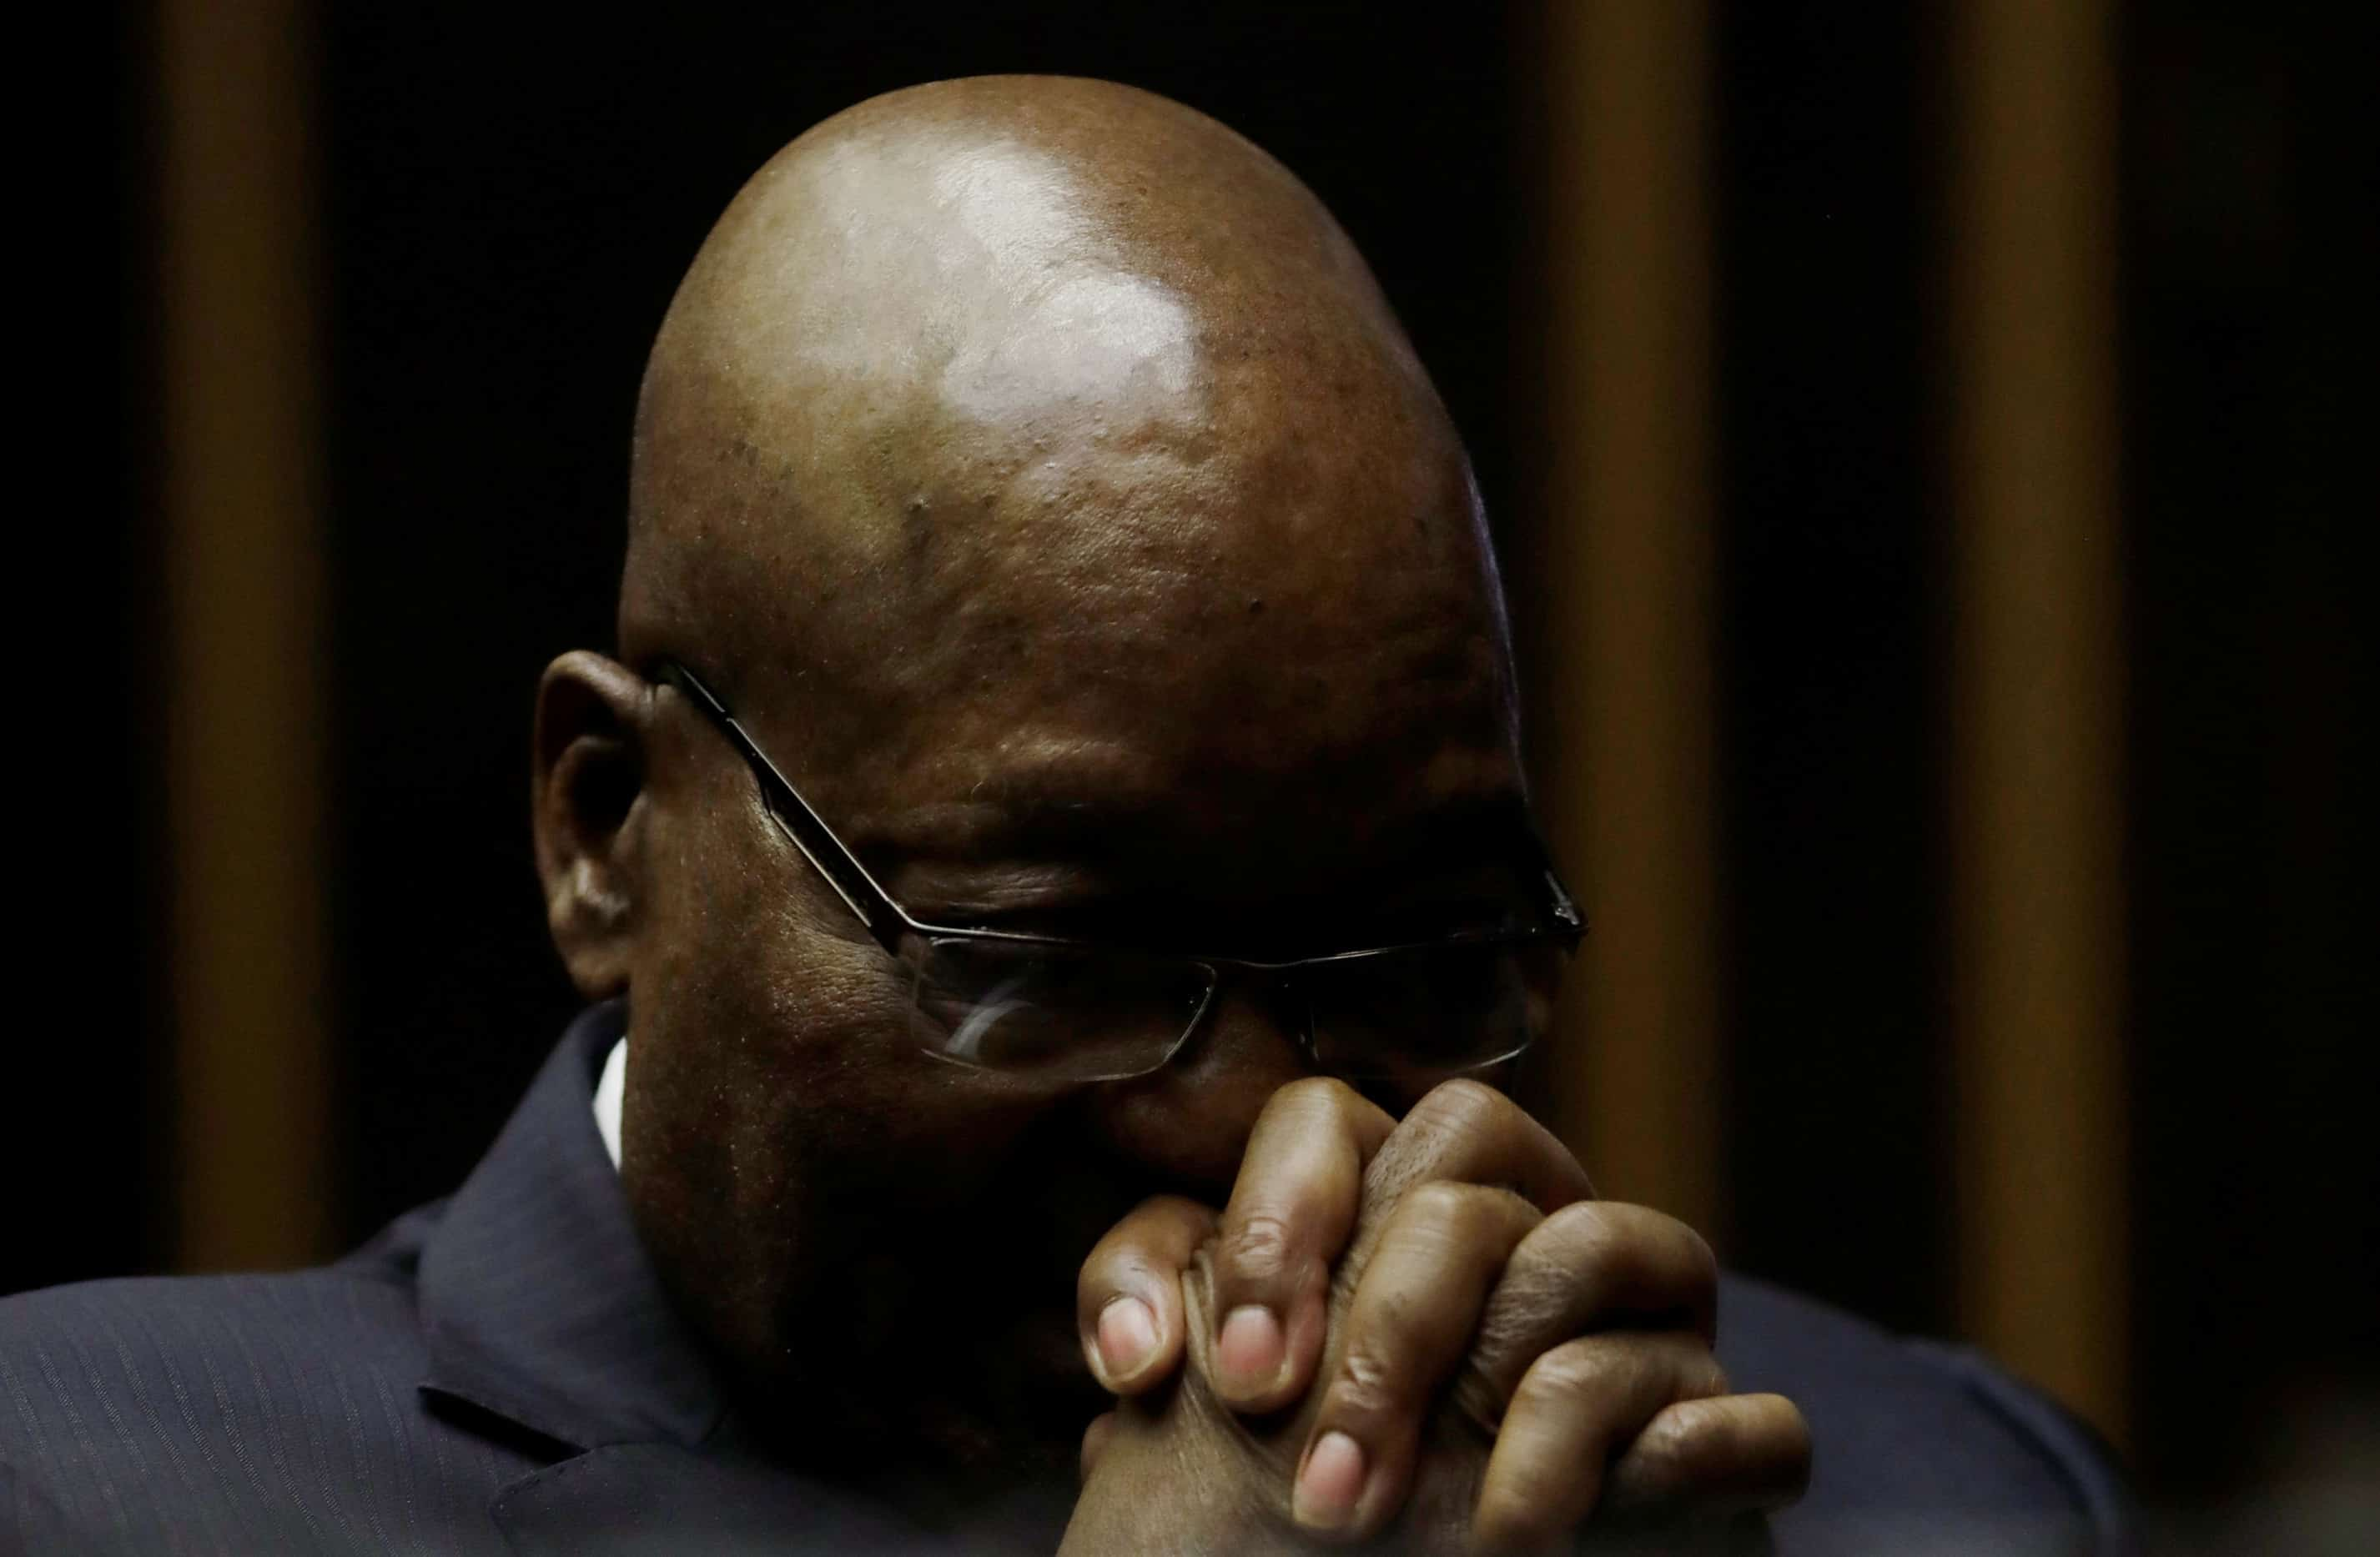 24 May 2019: Former South African president Jacob Zuma in court facing charges of fraud, corruption and racketeering from more than 13 years earlier. (Photograph by Themba Hadebe/Pool via Reuters)